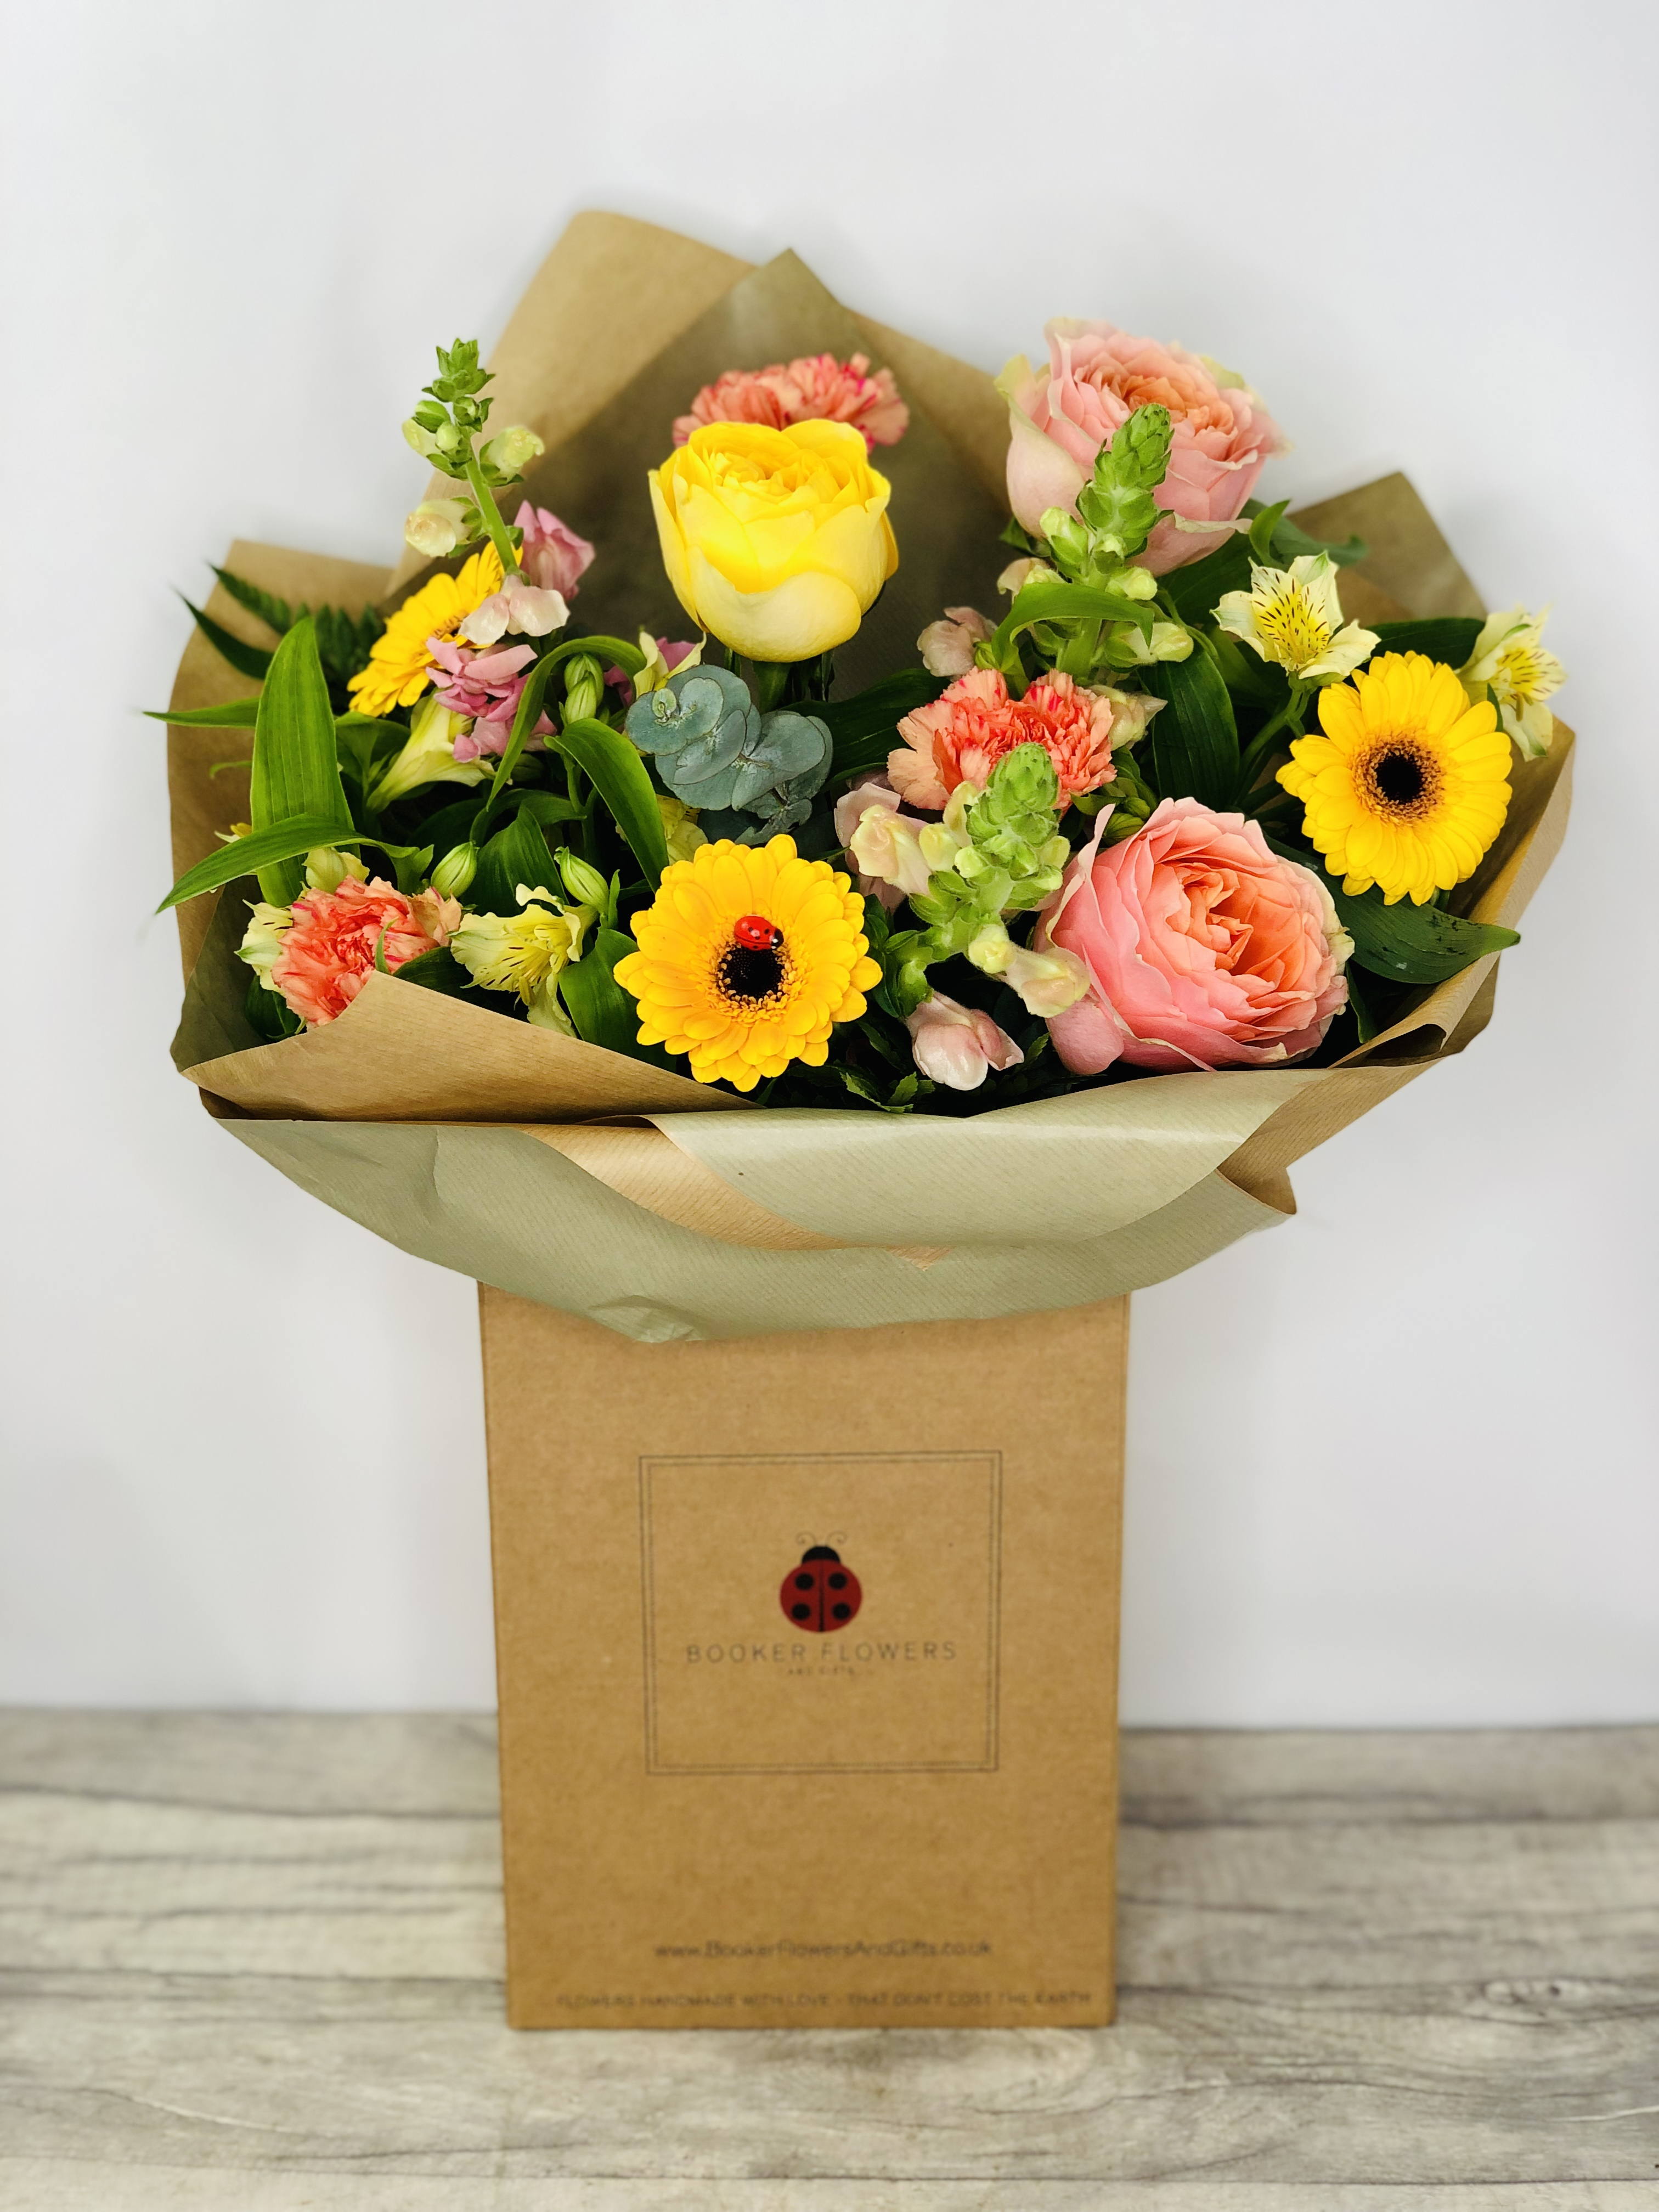 We sell a large range of Congratulations Flowers and Remember we offer Flower Delivery Liverpool. We can provide Congratulations Flowers for you in Liverpool - Merseyside and can organize Congratulations flower deliveries for you Nationwide. 